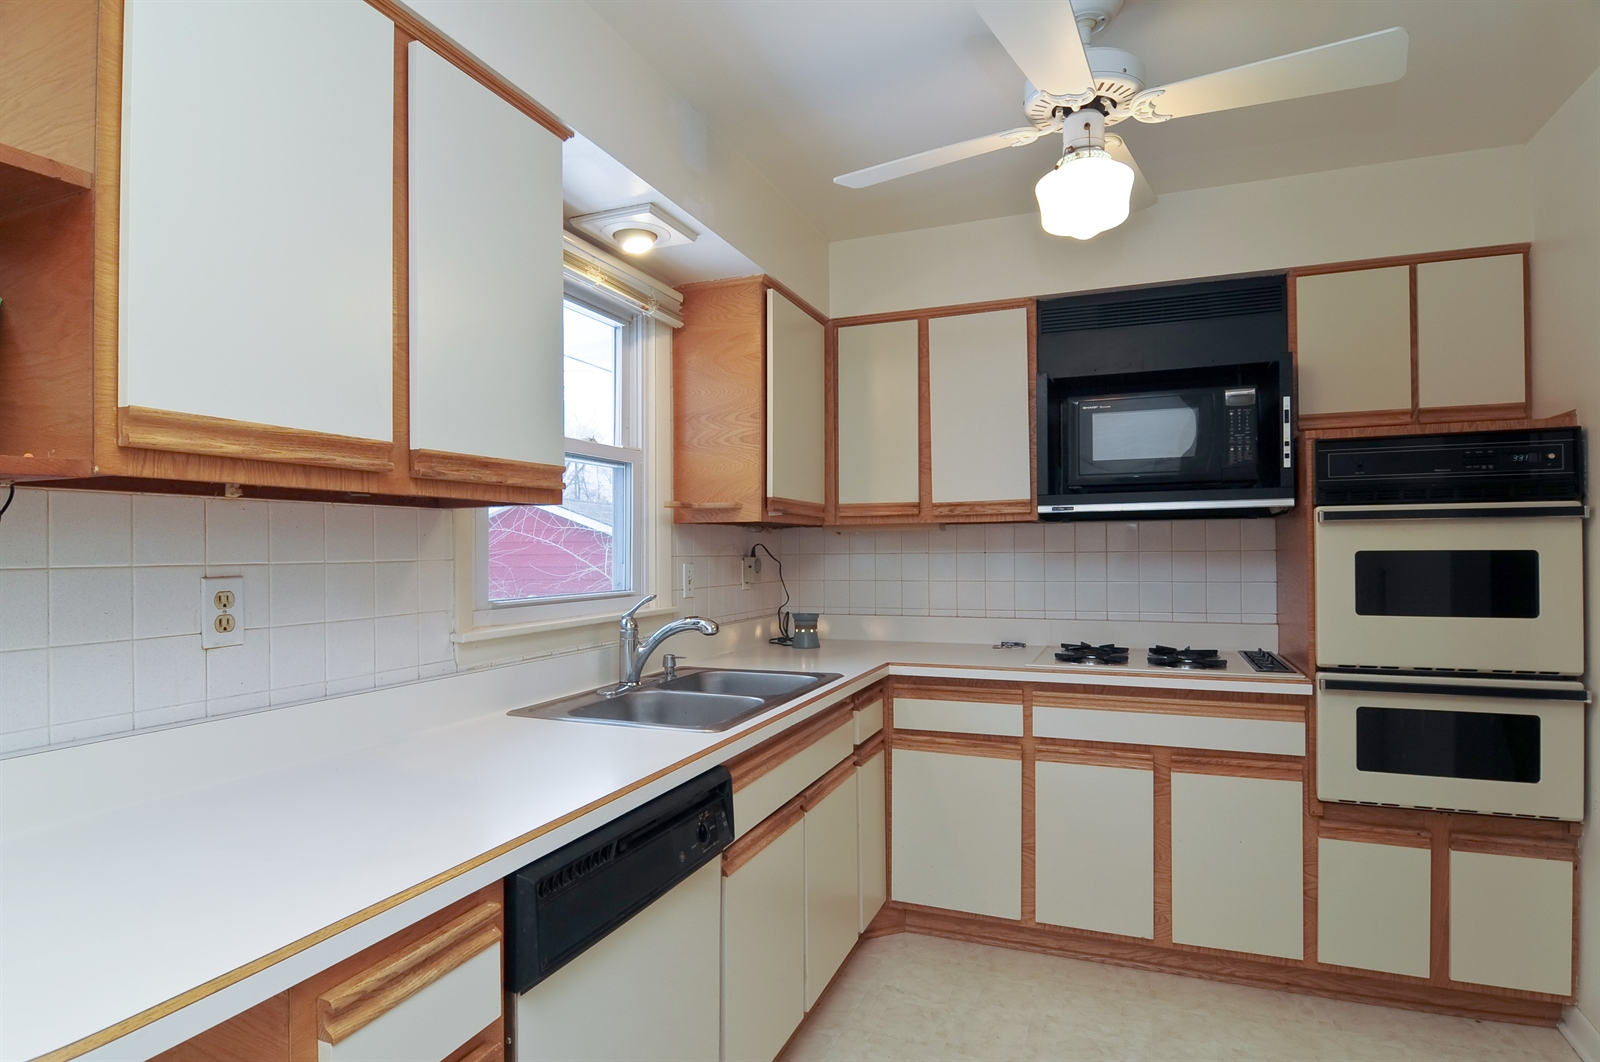 Real Estate Photography - 18658 Old Plank Rd, Wildwood, IL, 60030 - Kitchen